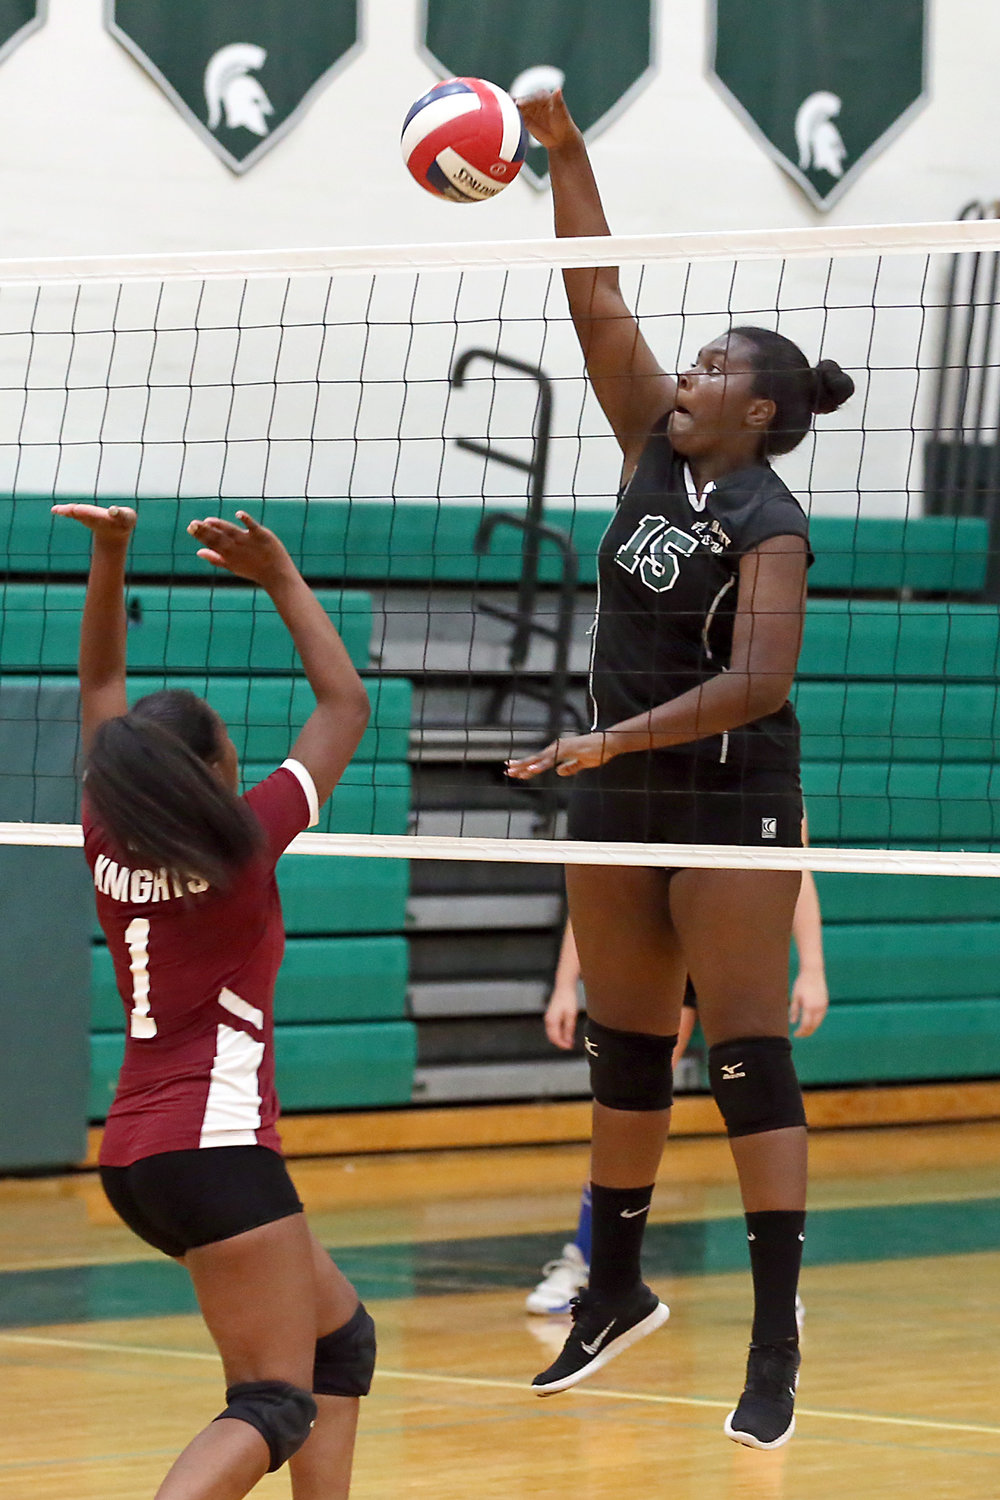 Sophomore Sasha Smalls has played big at the net for Valley Stream North, which is on the verge of capturing the conference title.